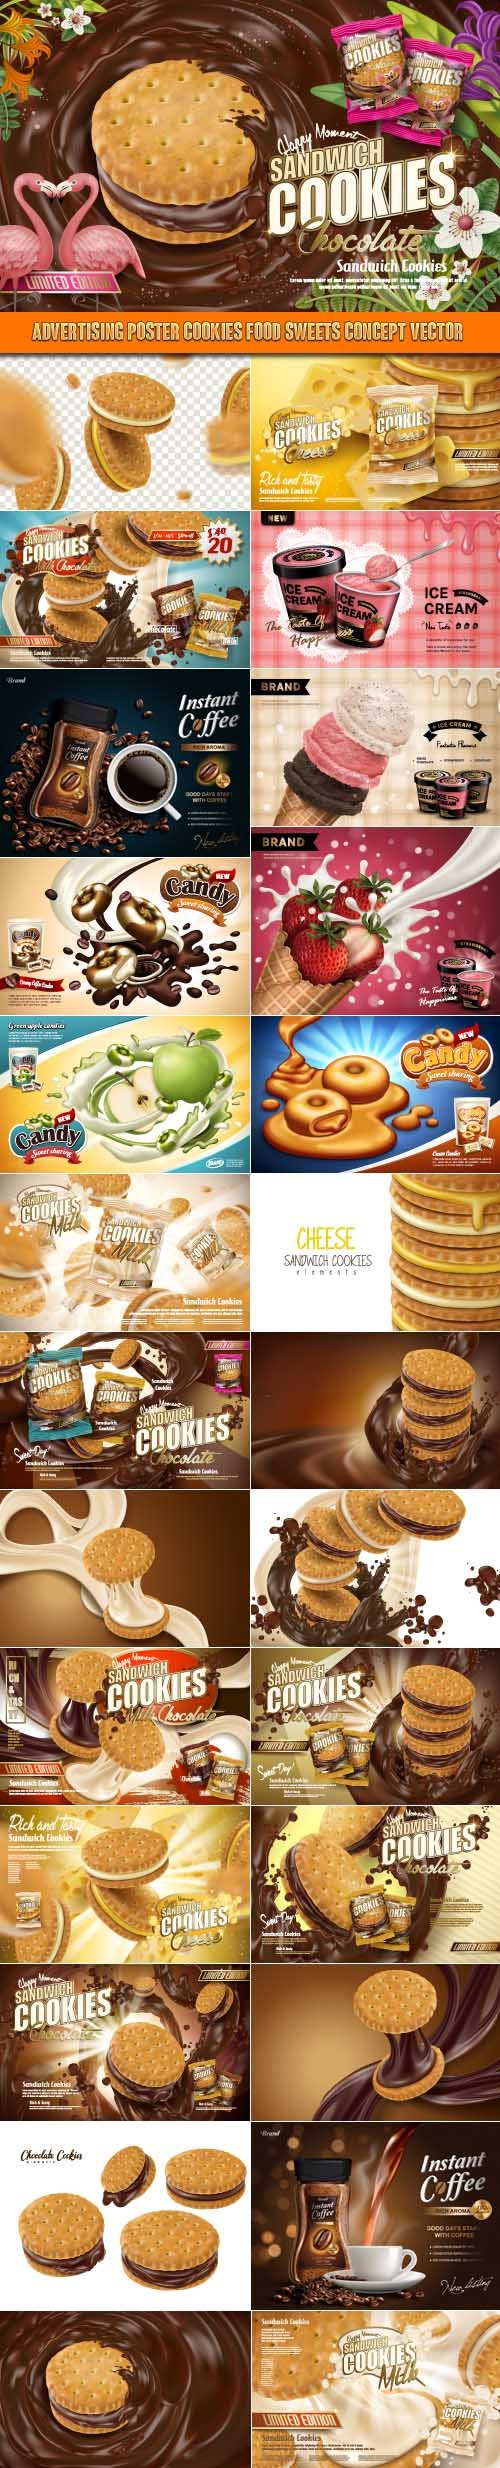 Advertising Poster Cookies food sweets Concept vector